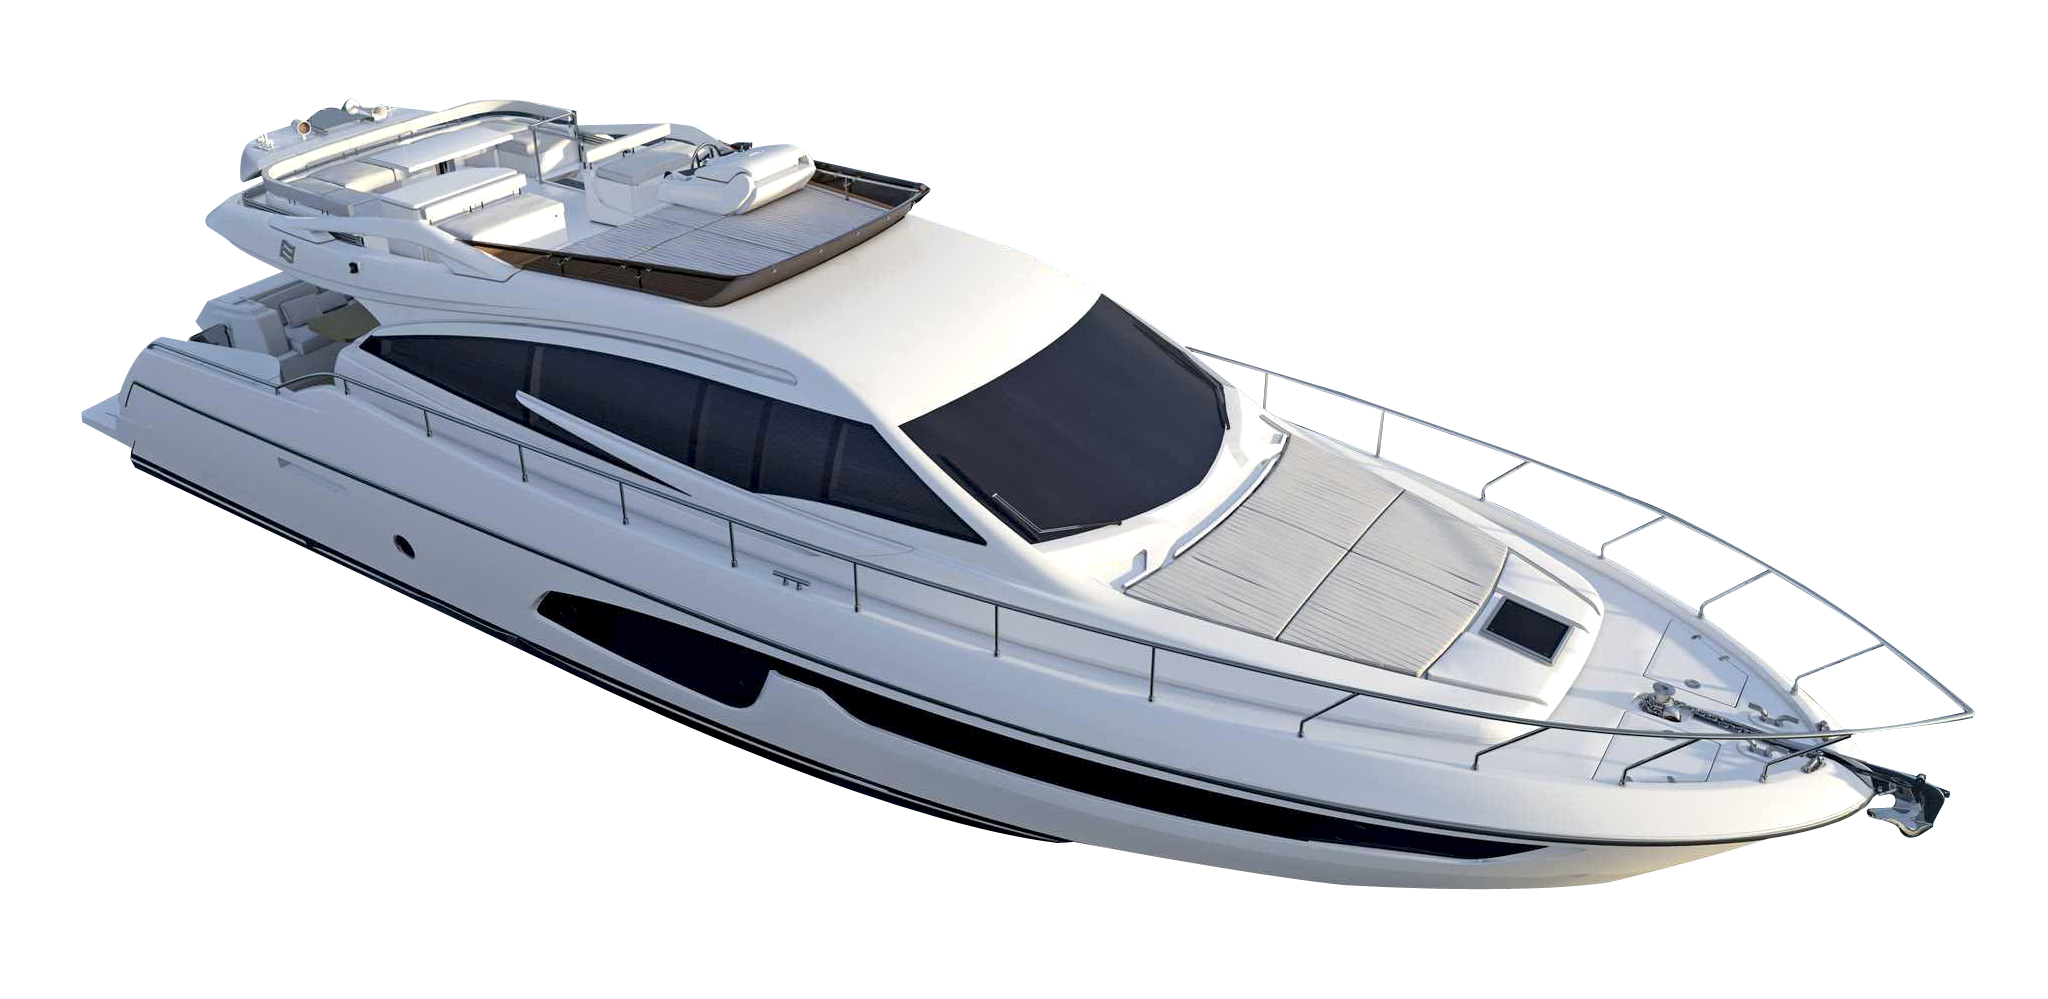 Yacht Boat PNG Image